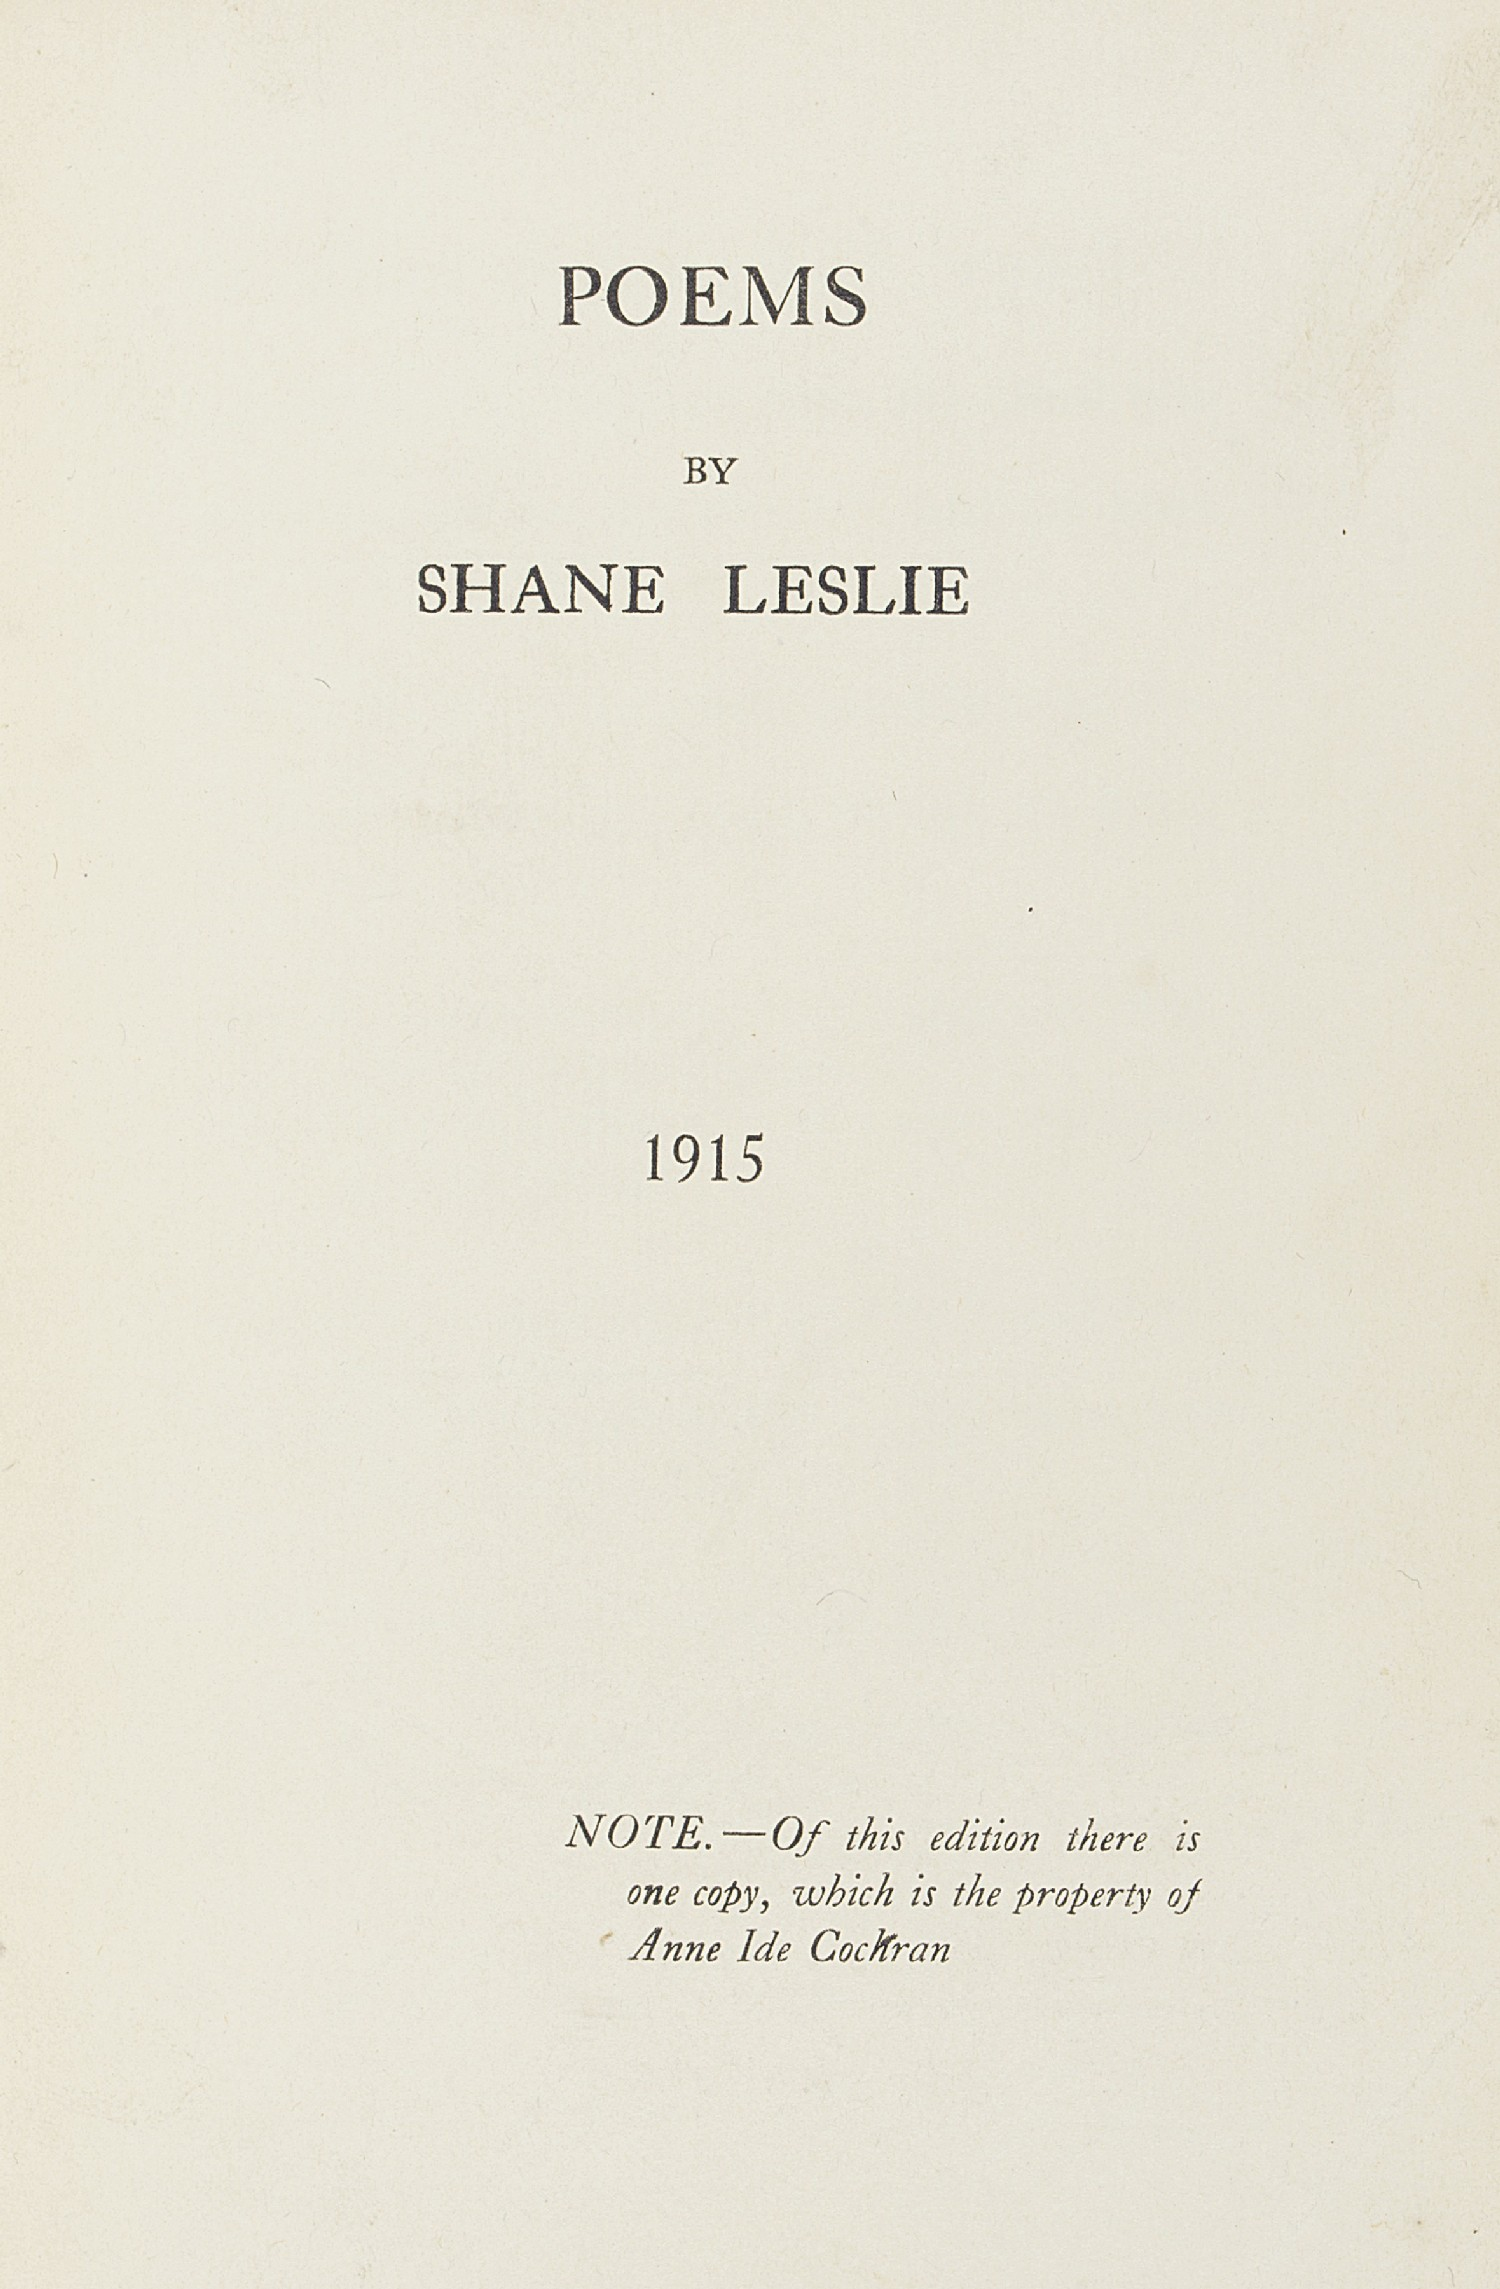 LESLIE, Sir John Randolph [Shane] (1885-1971). Poems. [N.p.: privately published for the author,] 1915. 8° (182 x 123mm). 6 leaves printed on laid paper with horizontal chain-lines, together with 12 further leaves with anvil watermark (of which 6 blank at beginning), 5 with ink manuscript poems possibly in the author's hand on rectos, 2 printed poems by Leslie on browned paper pasted in at end with corrections and markings in pencil. (Title and first leaf with light crease to bottom corner, light marginal mark to title, light offsetting from pasted-in poems.) Contemporary three-quarter green morocco over marbled-paper covered boards, lettered in gilt to upper cover (extremities lightly rubbed, spine faded and more heavily rubbed).